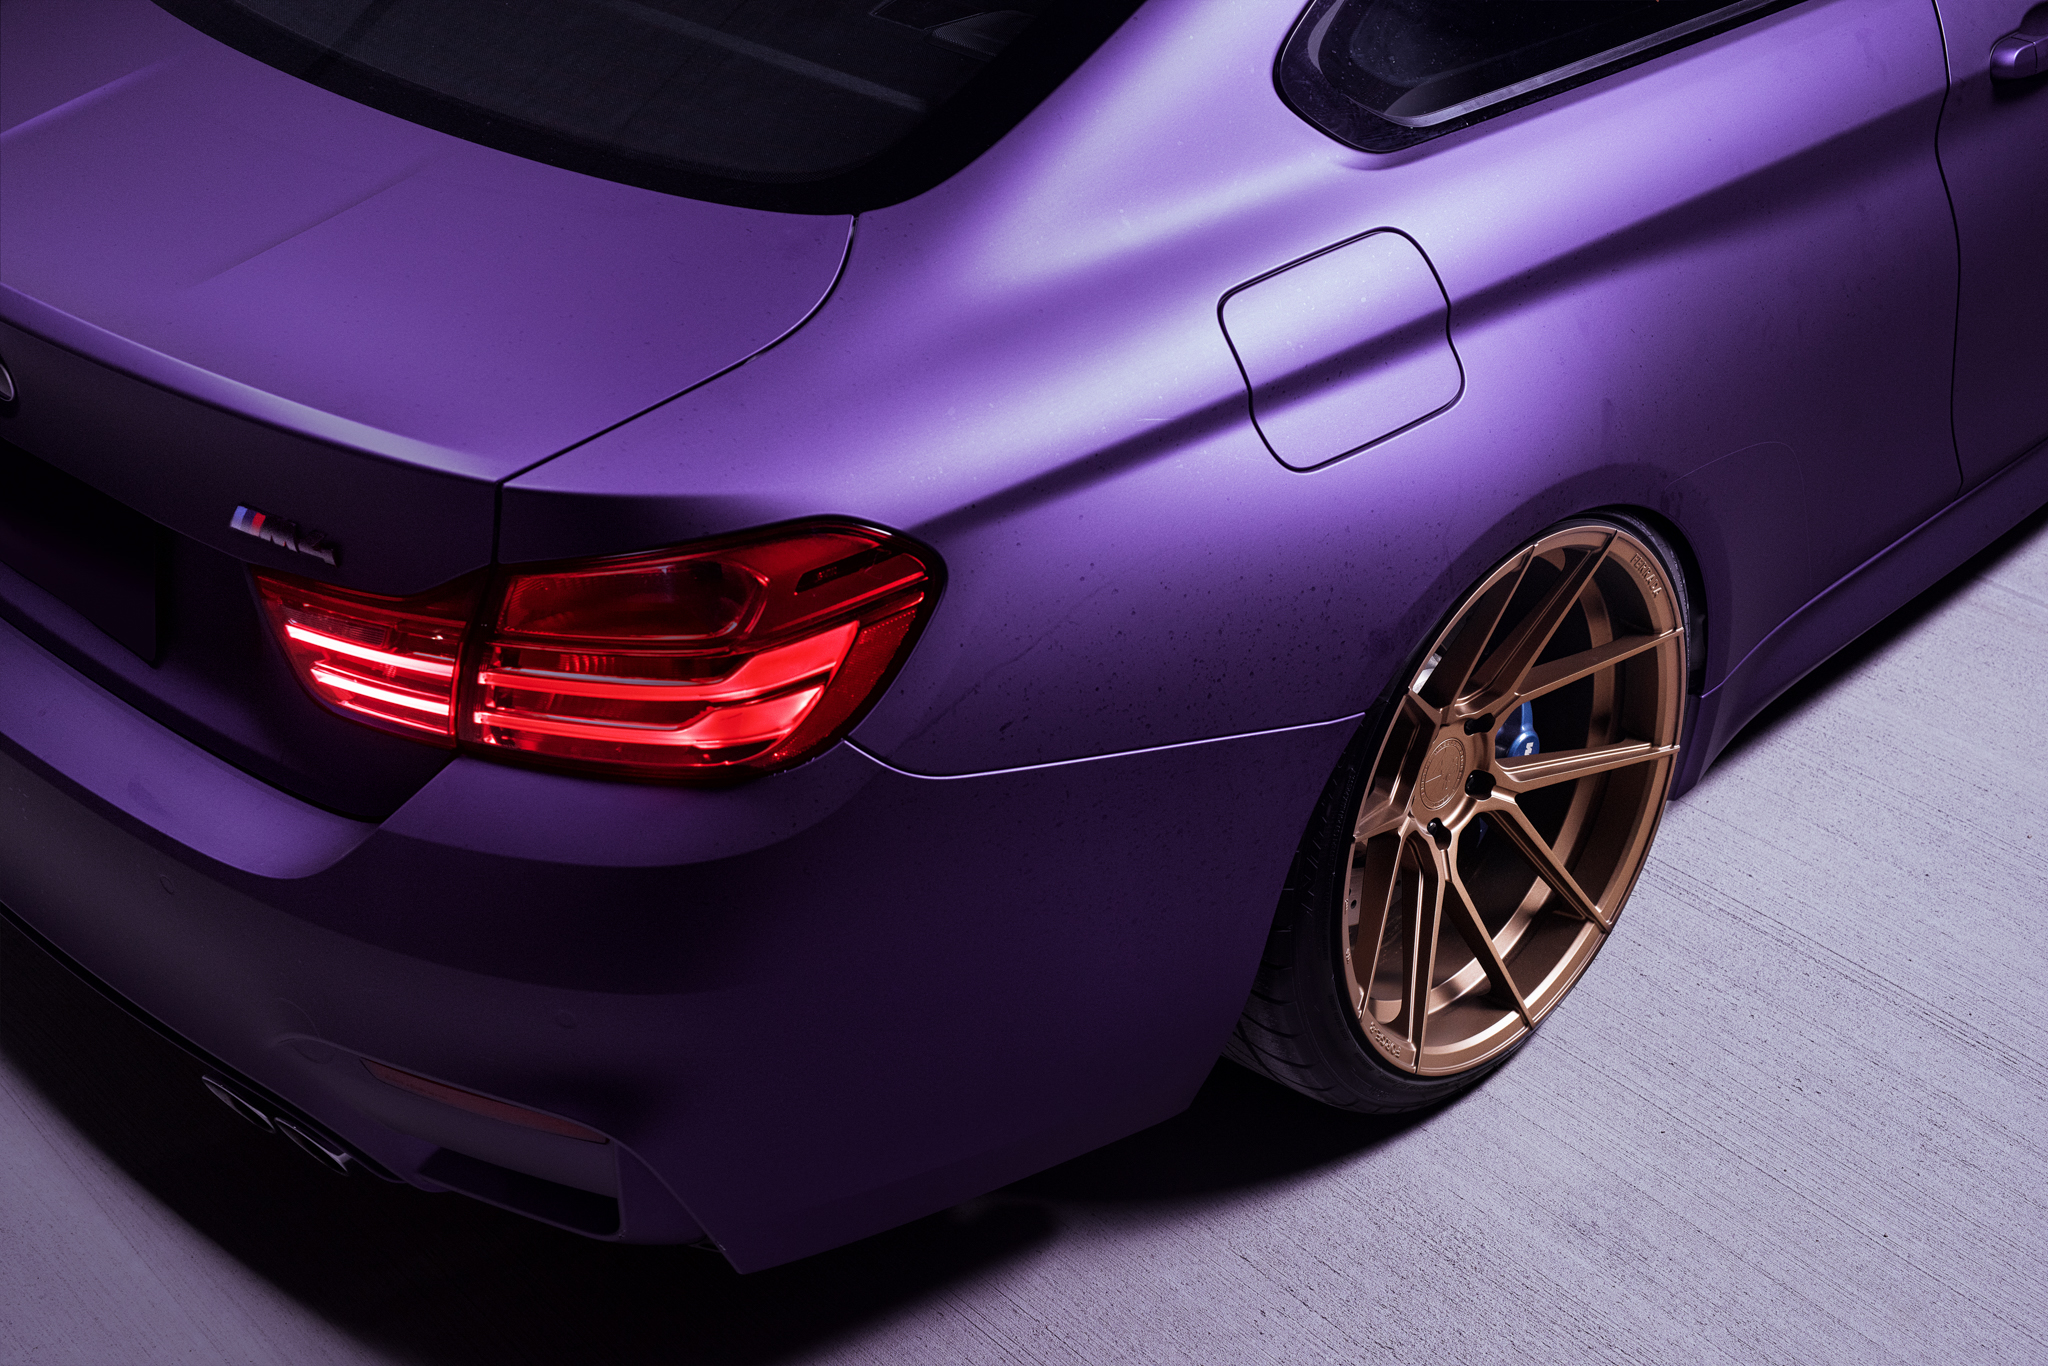 BMW M4 & M6 in Matte Purple (5)